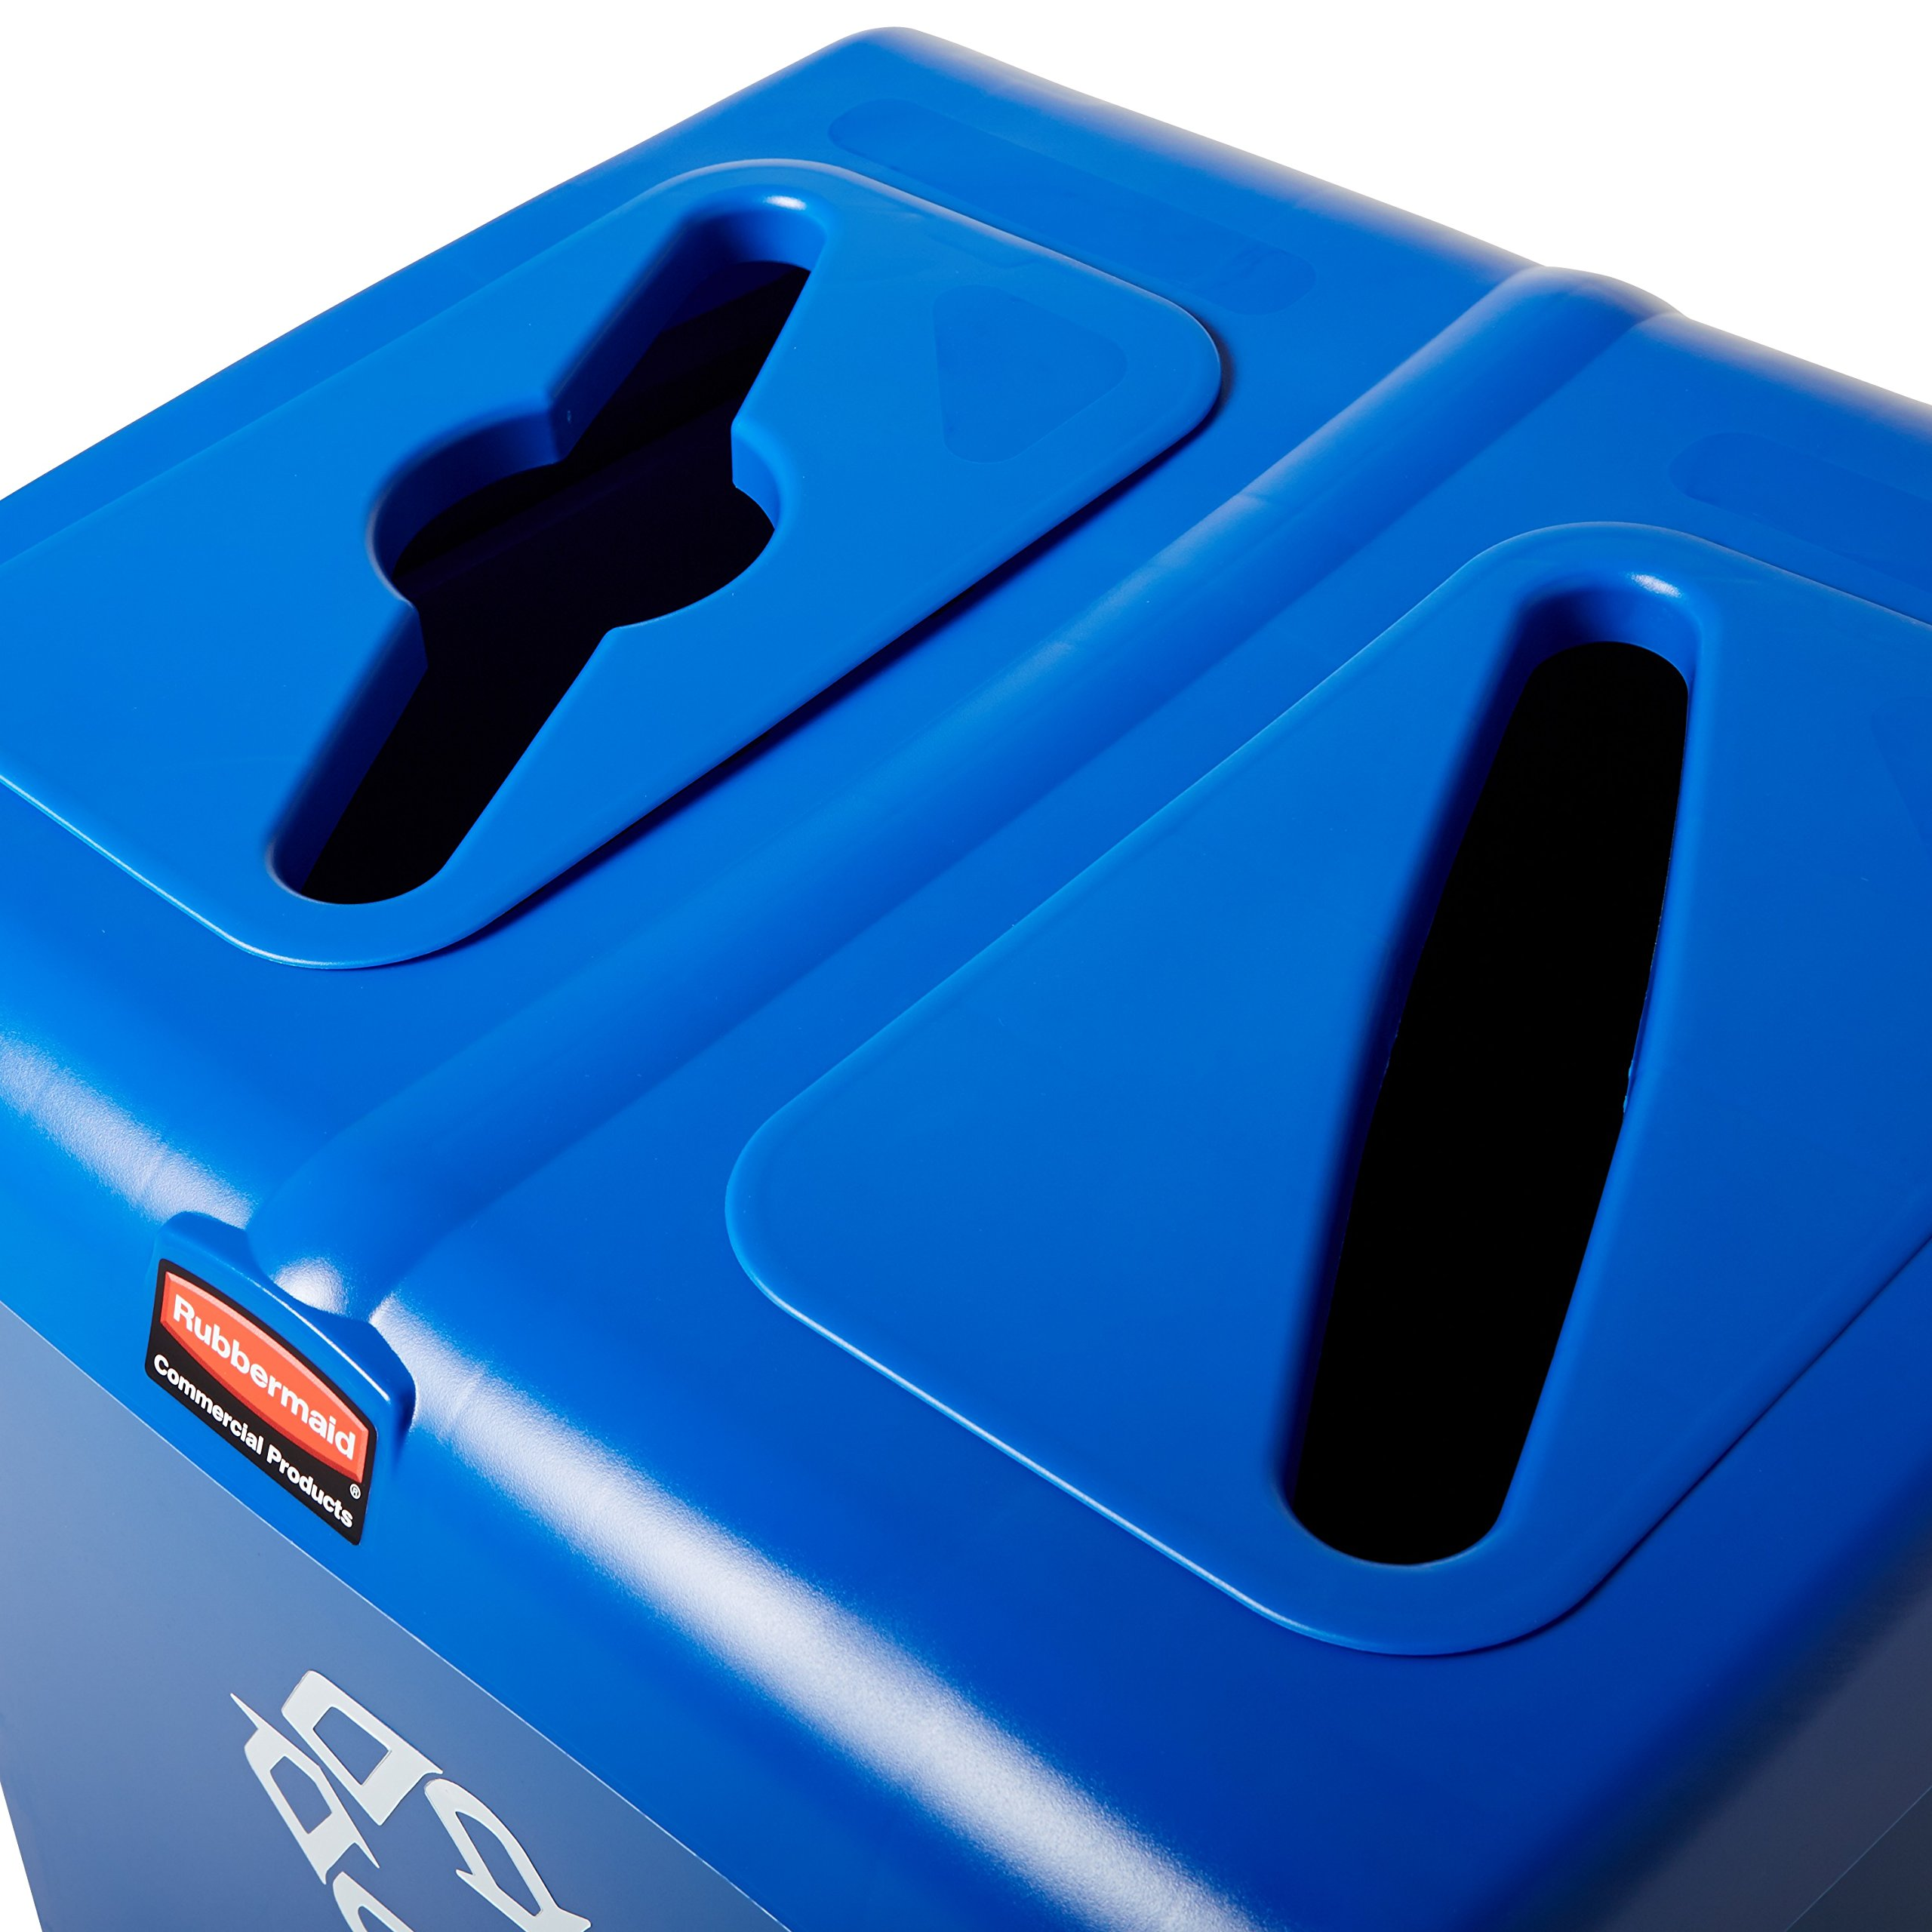 Rubbermaid Commercial 1792339 Glutton Recycling Station, 2-Stream, 46-Gallon, Blue by Rubbermaid Commercial Products (Image #8)